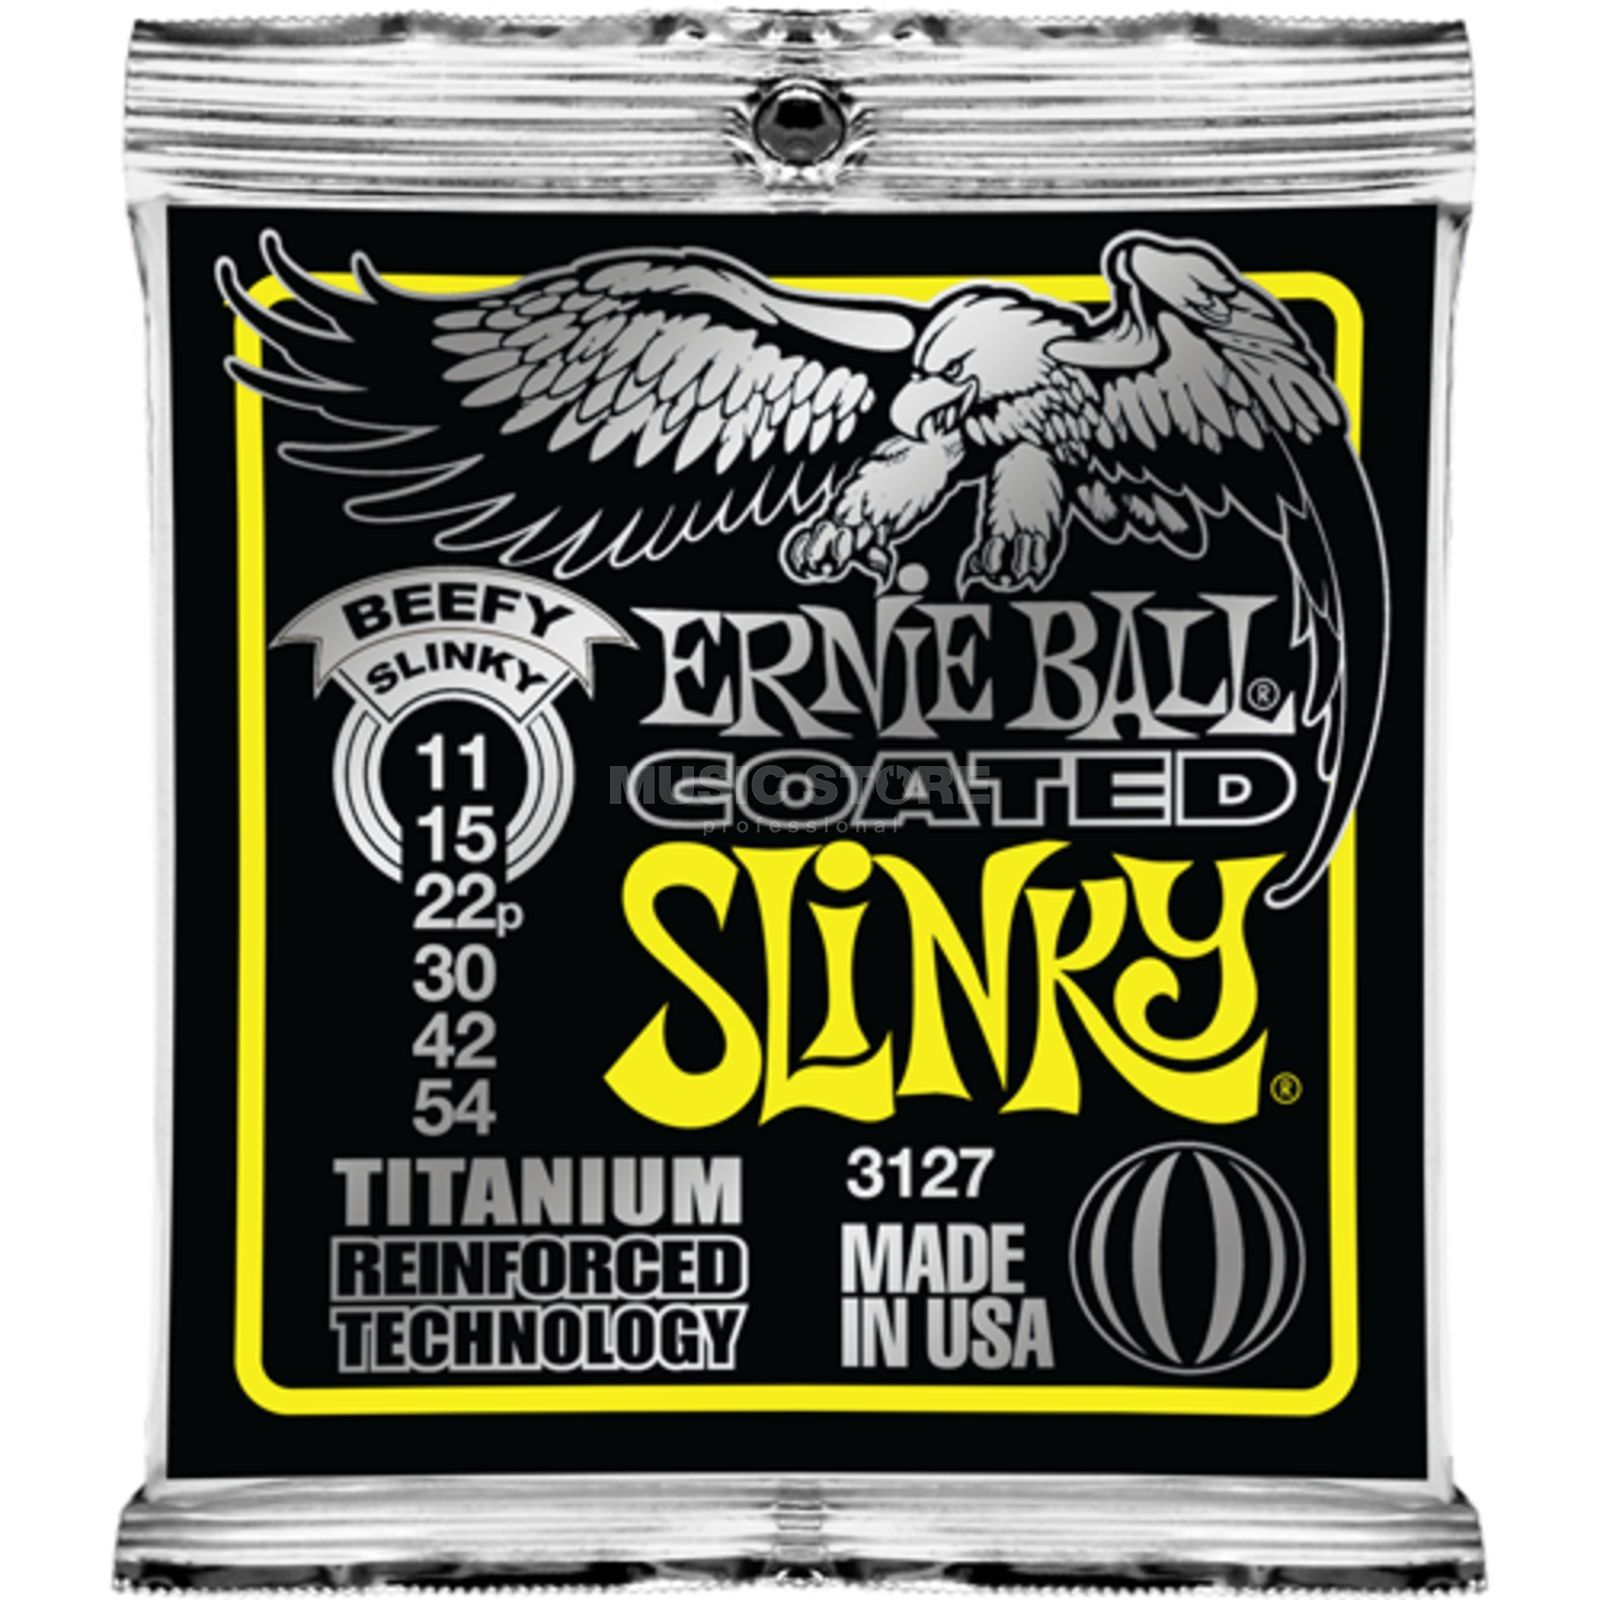 Ernie Ball E-Guitar Strings 11-54 Coated Titanium Beefy Slinky EB3127 Produktbillede